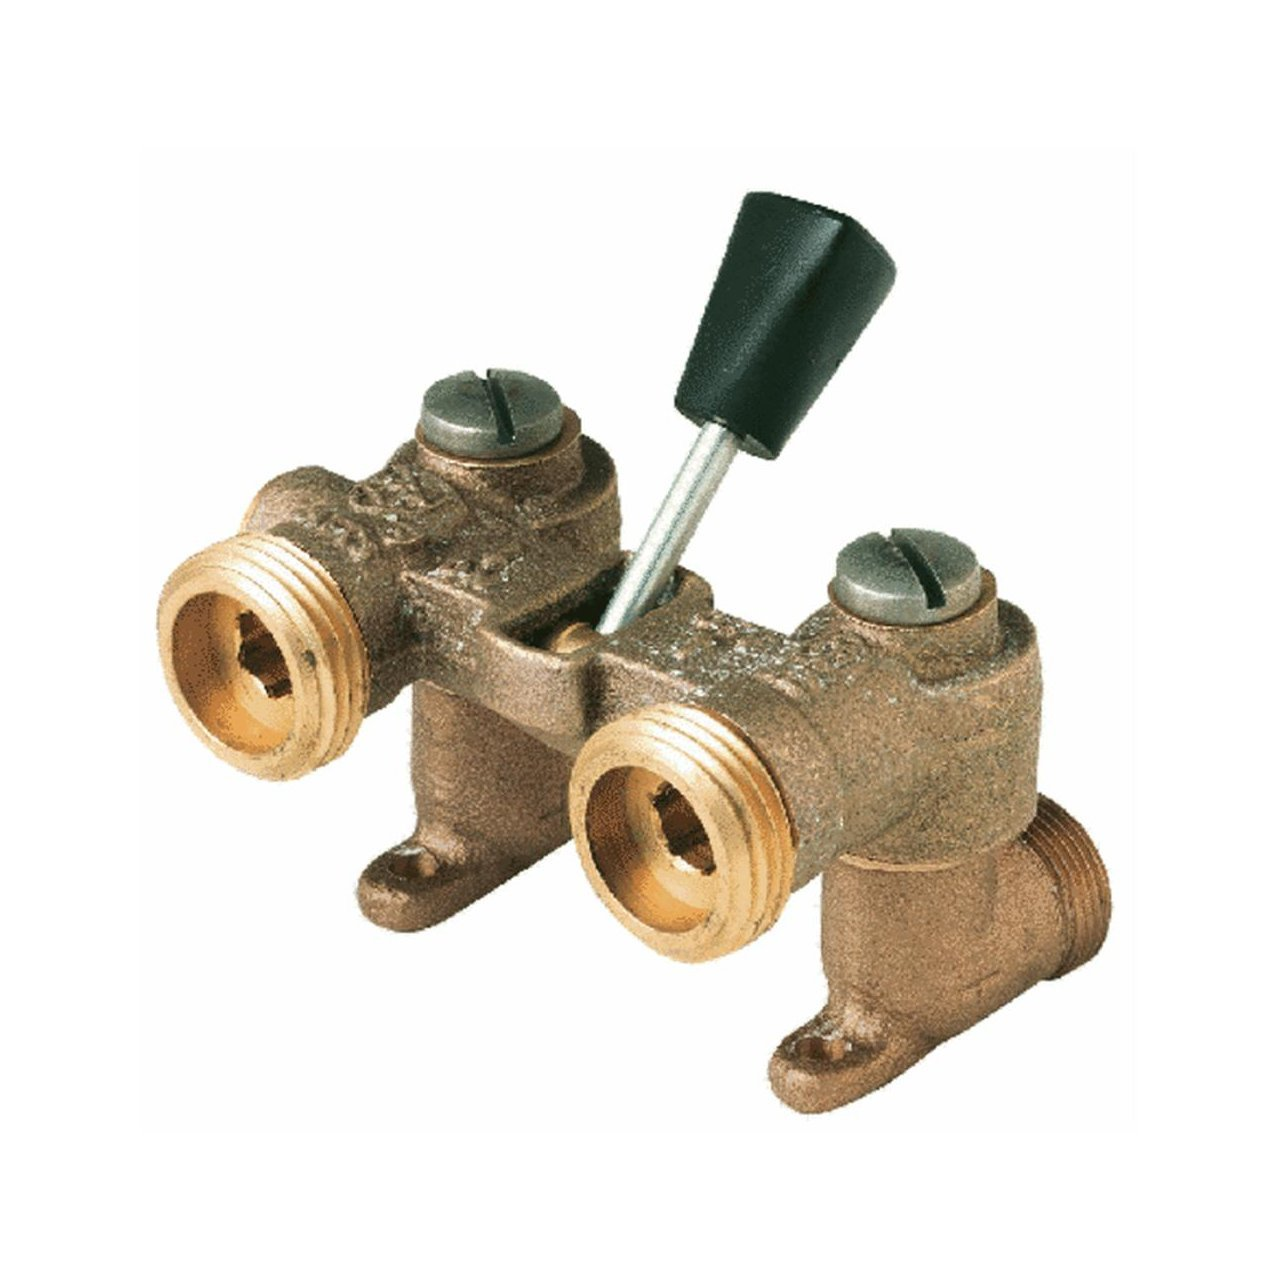 Watts Water Technologies DP2-M2 Washing Machine Shut-Off Valve With Ball-Type Construction